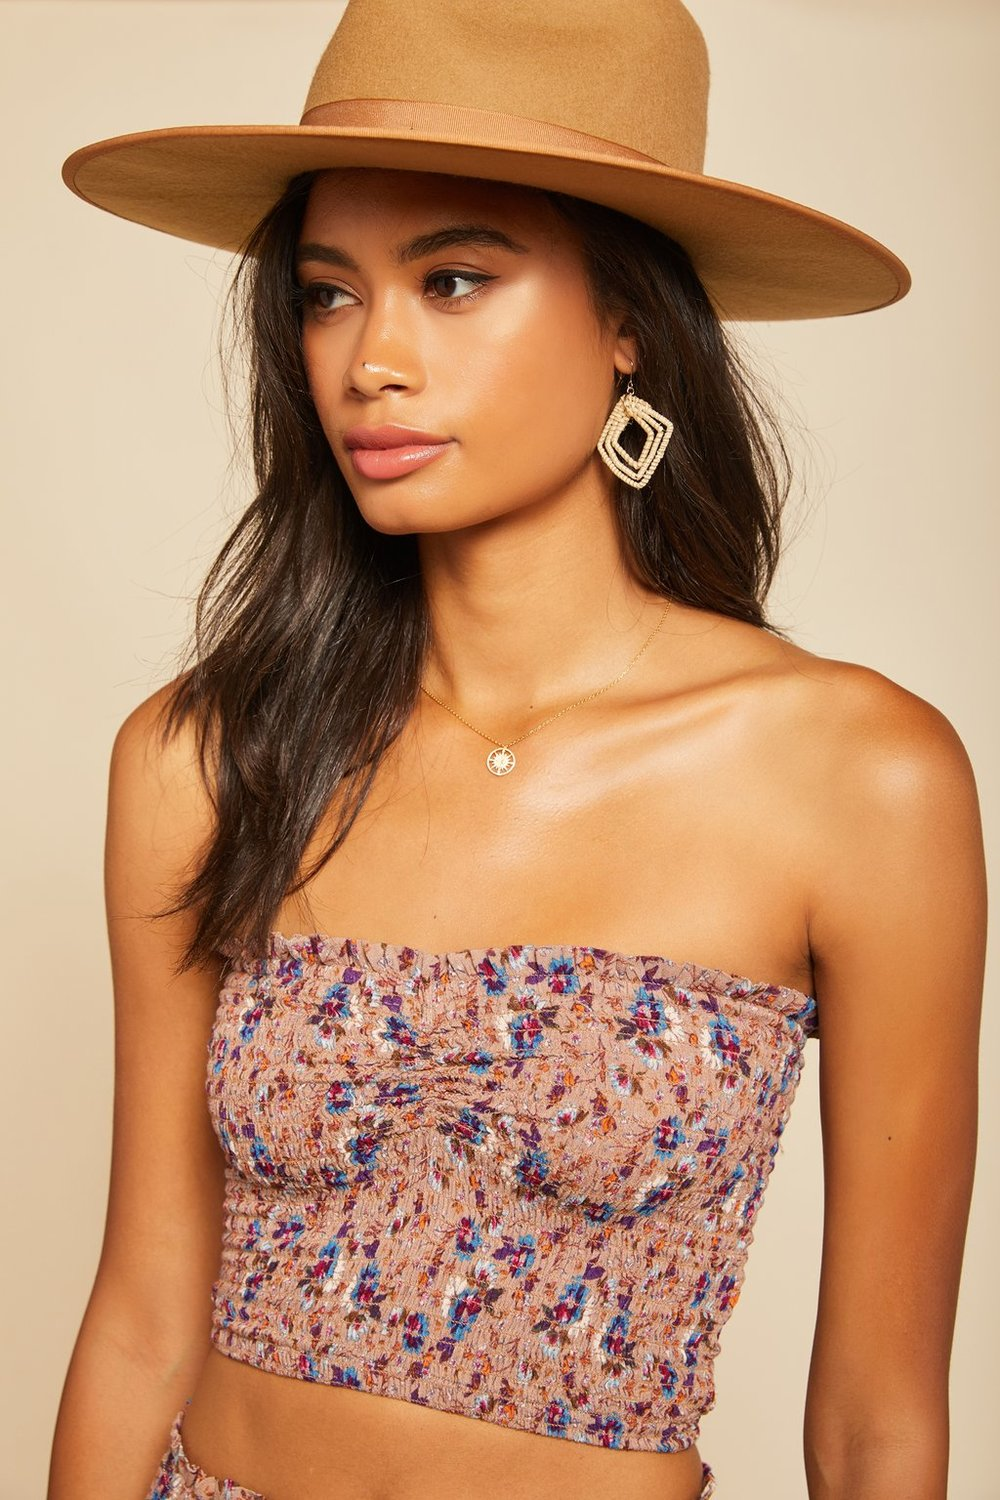 Into the Dawn Tube Top - $54